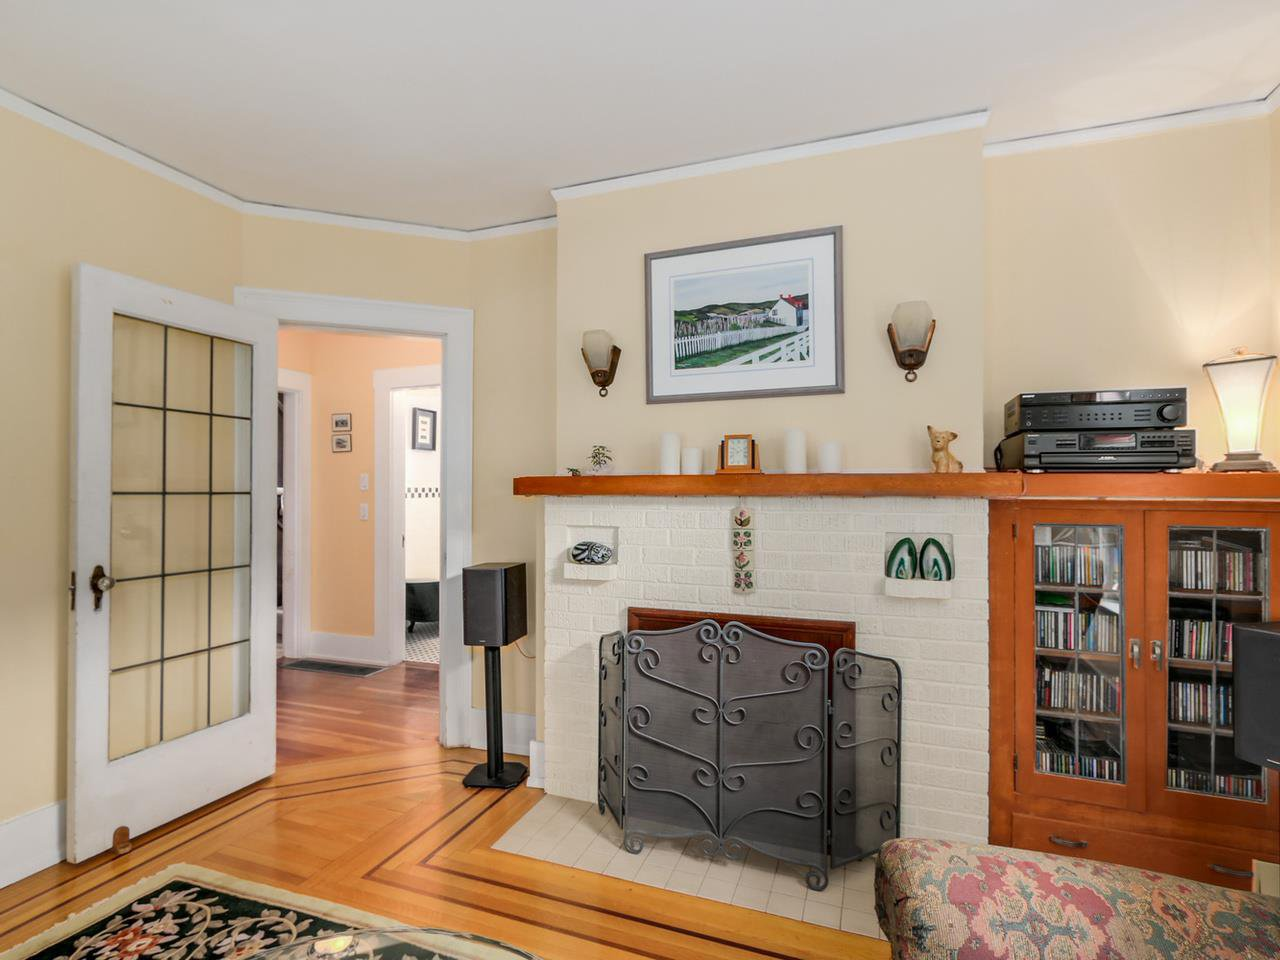 Photo 5: Photos: 1760 E 37TH AVENUE in Vancouver: Victoria VE House for sale (Vancouver East)  : MLS®# R2059026